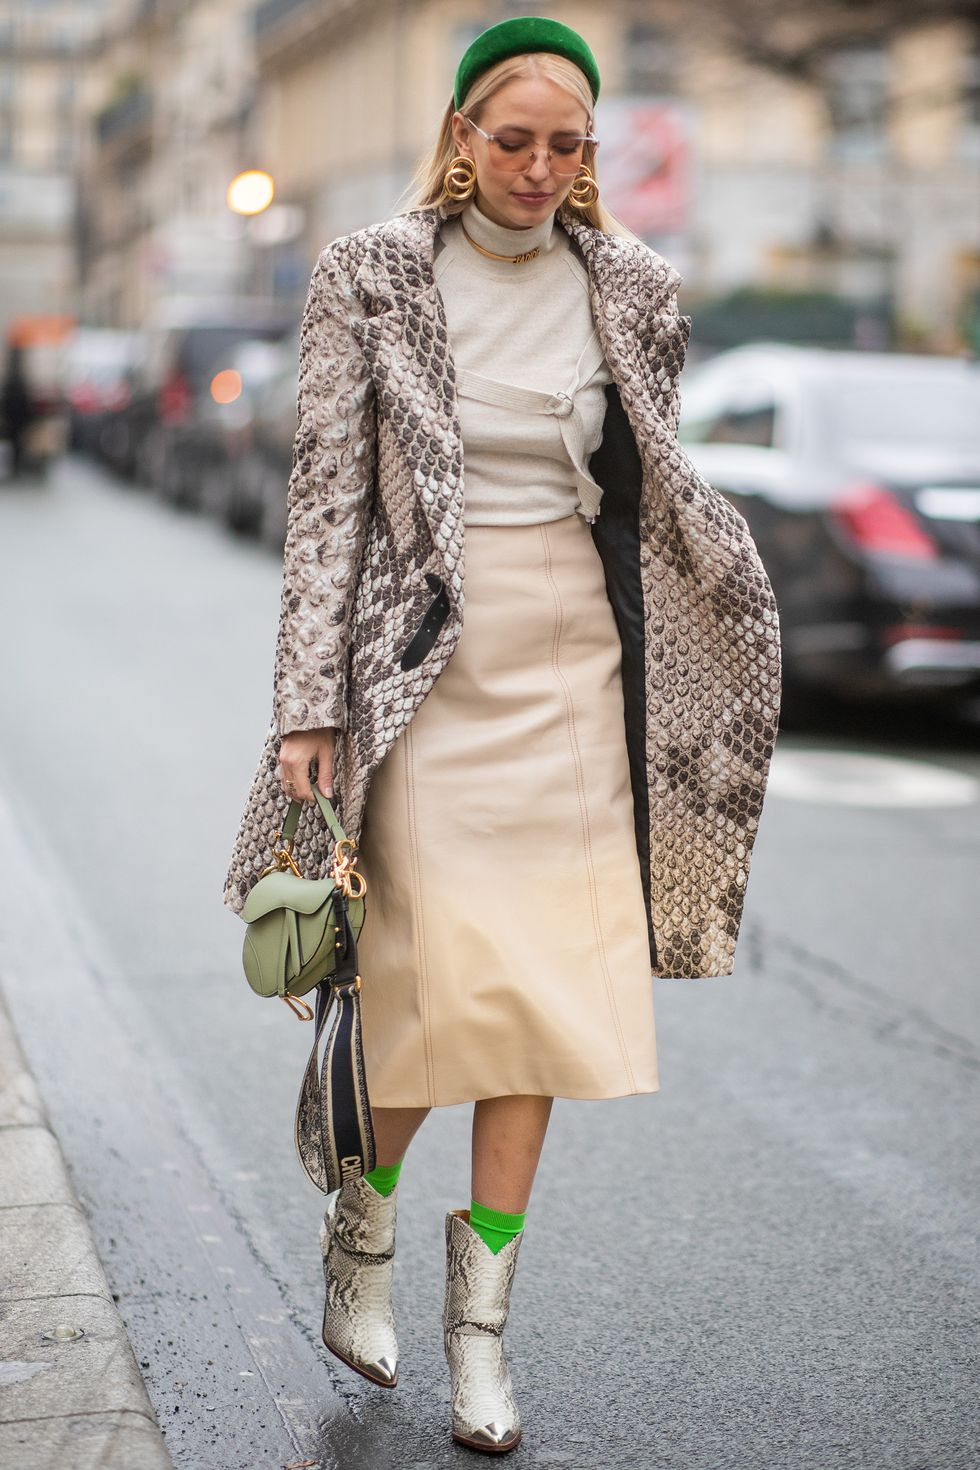 couture-street-style-4-1548341415